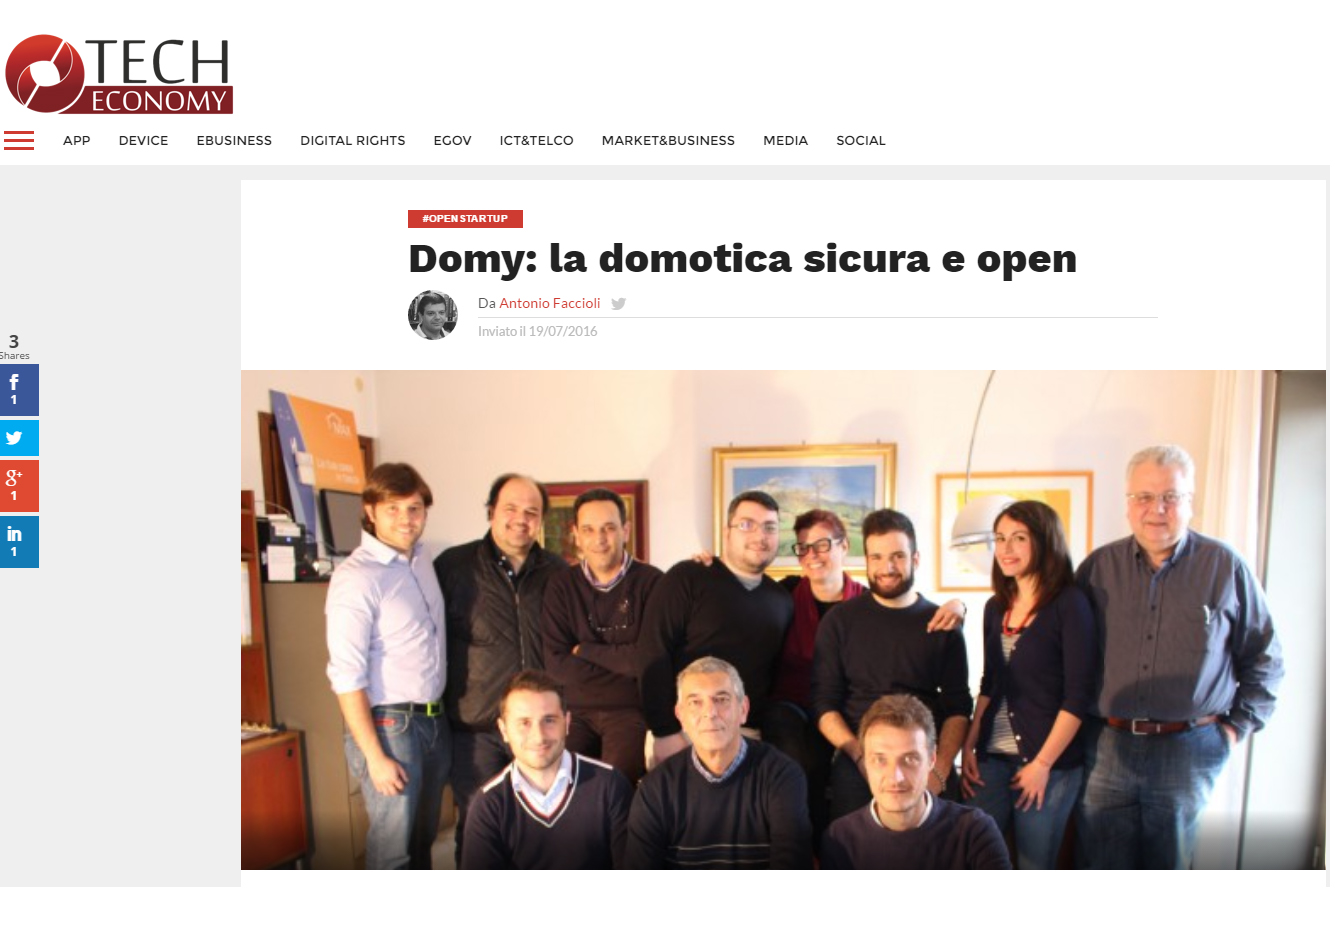 Domy: safe and open home automation